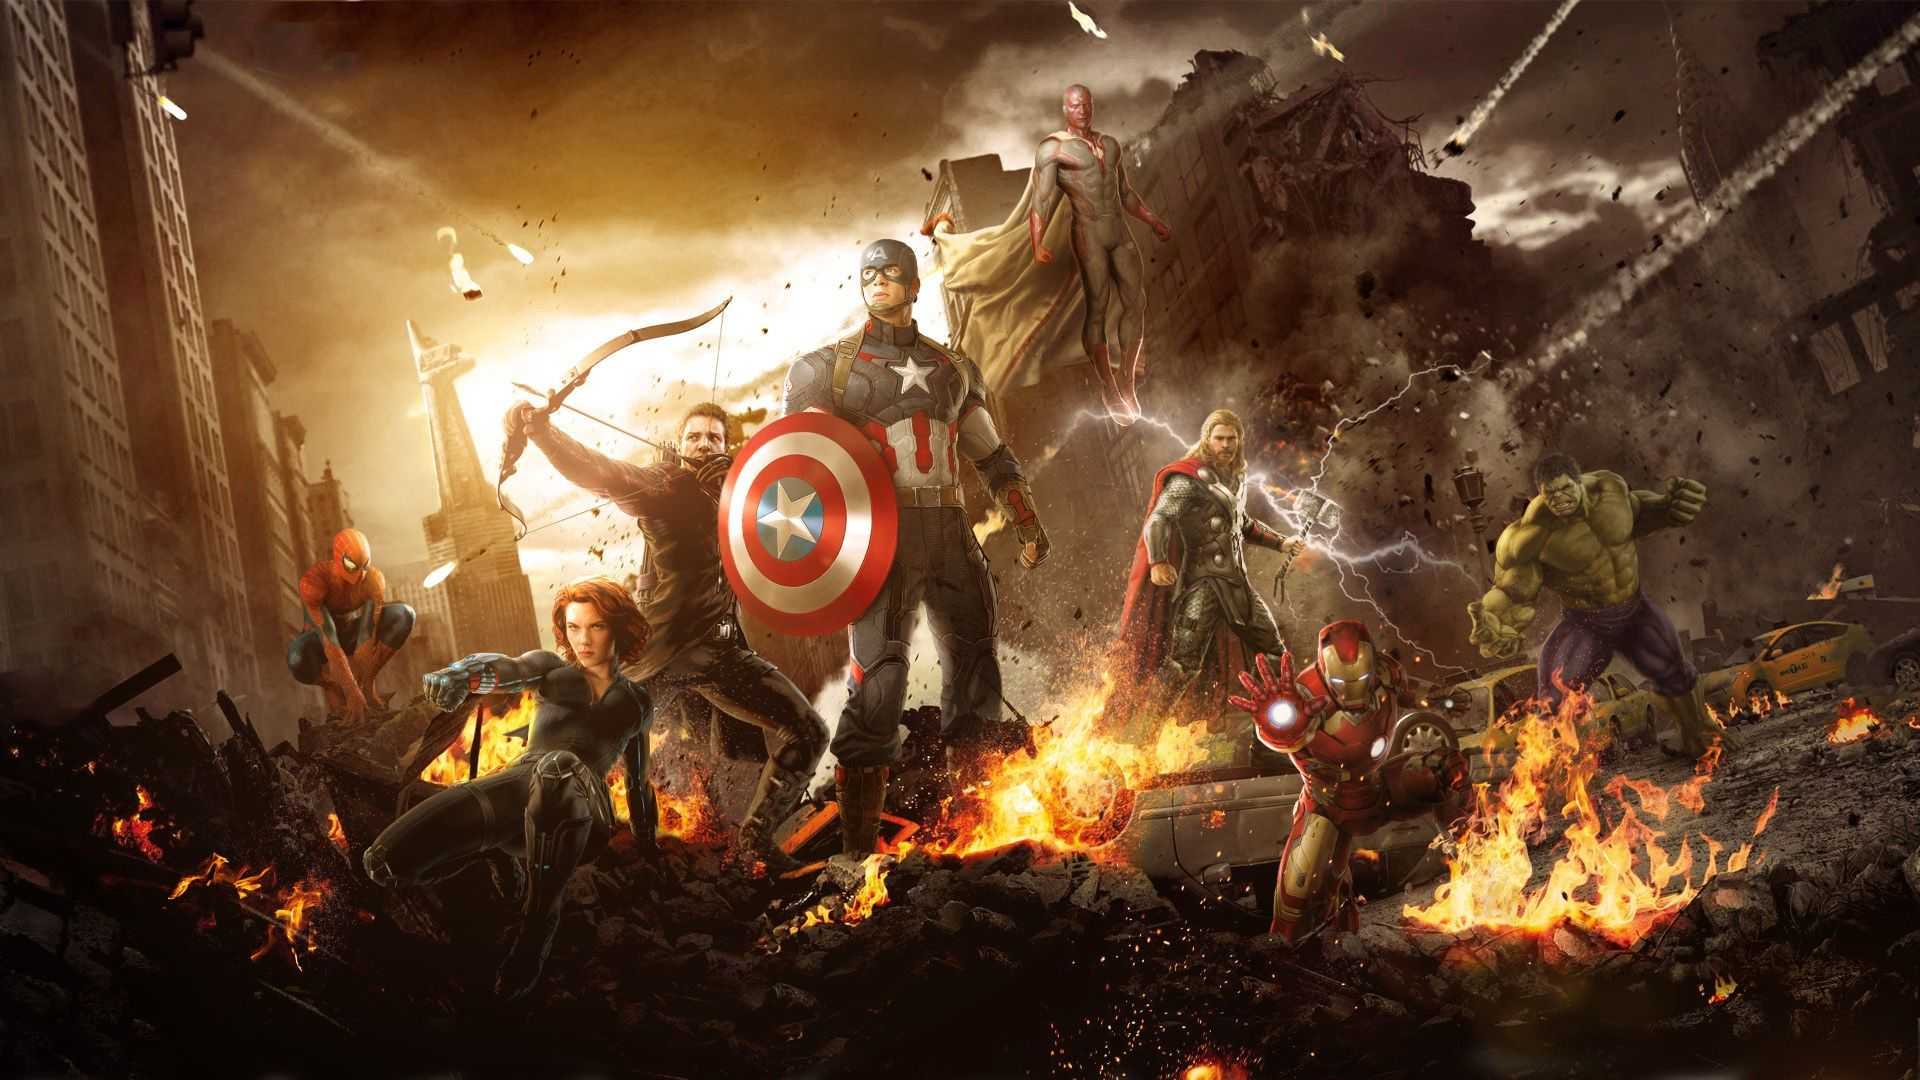 avengers hd wallpapers 1080p high quality o oshka pinterest